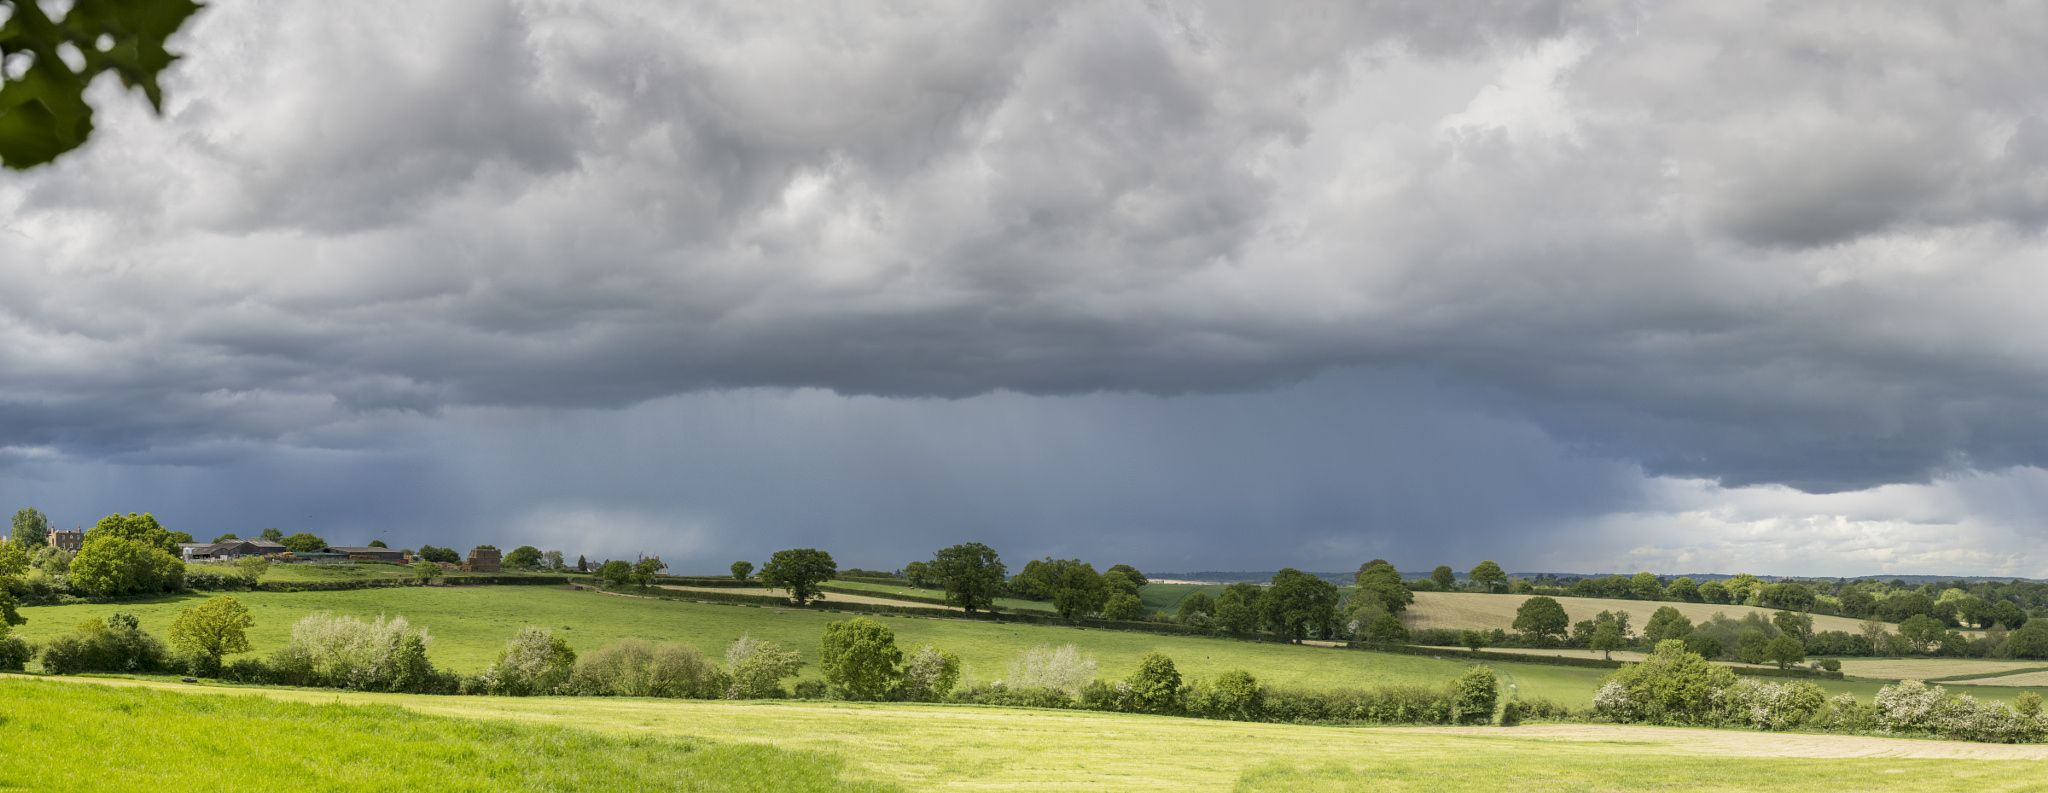 Rainclouds over Hertford Heath by Nigel Lomas on 500px